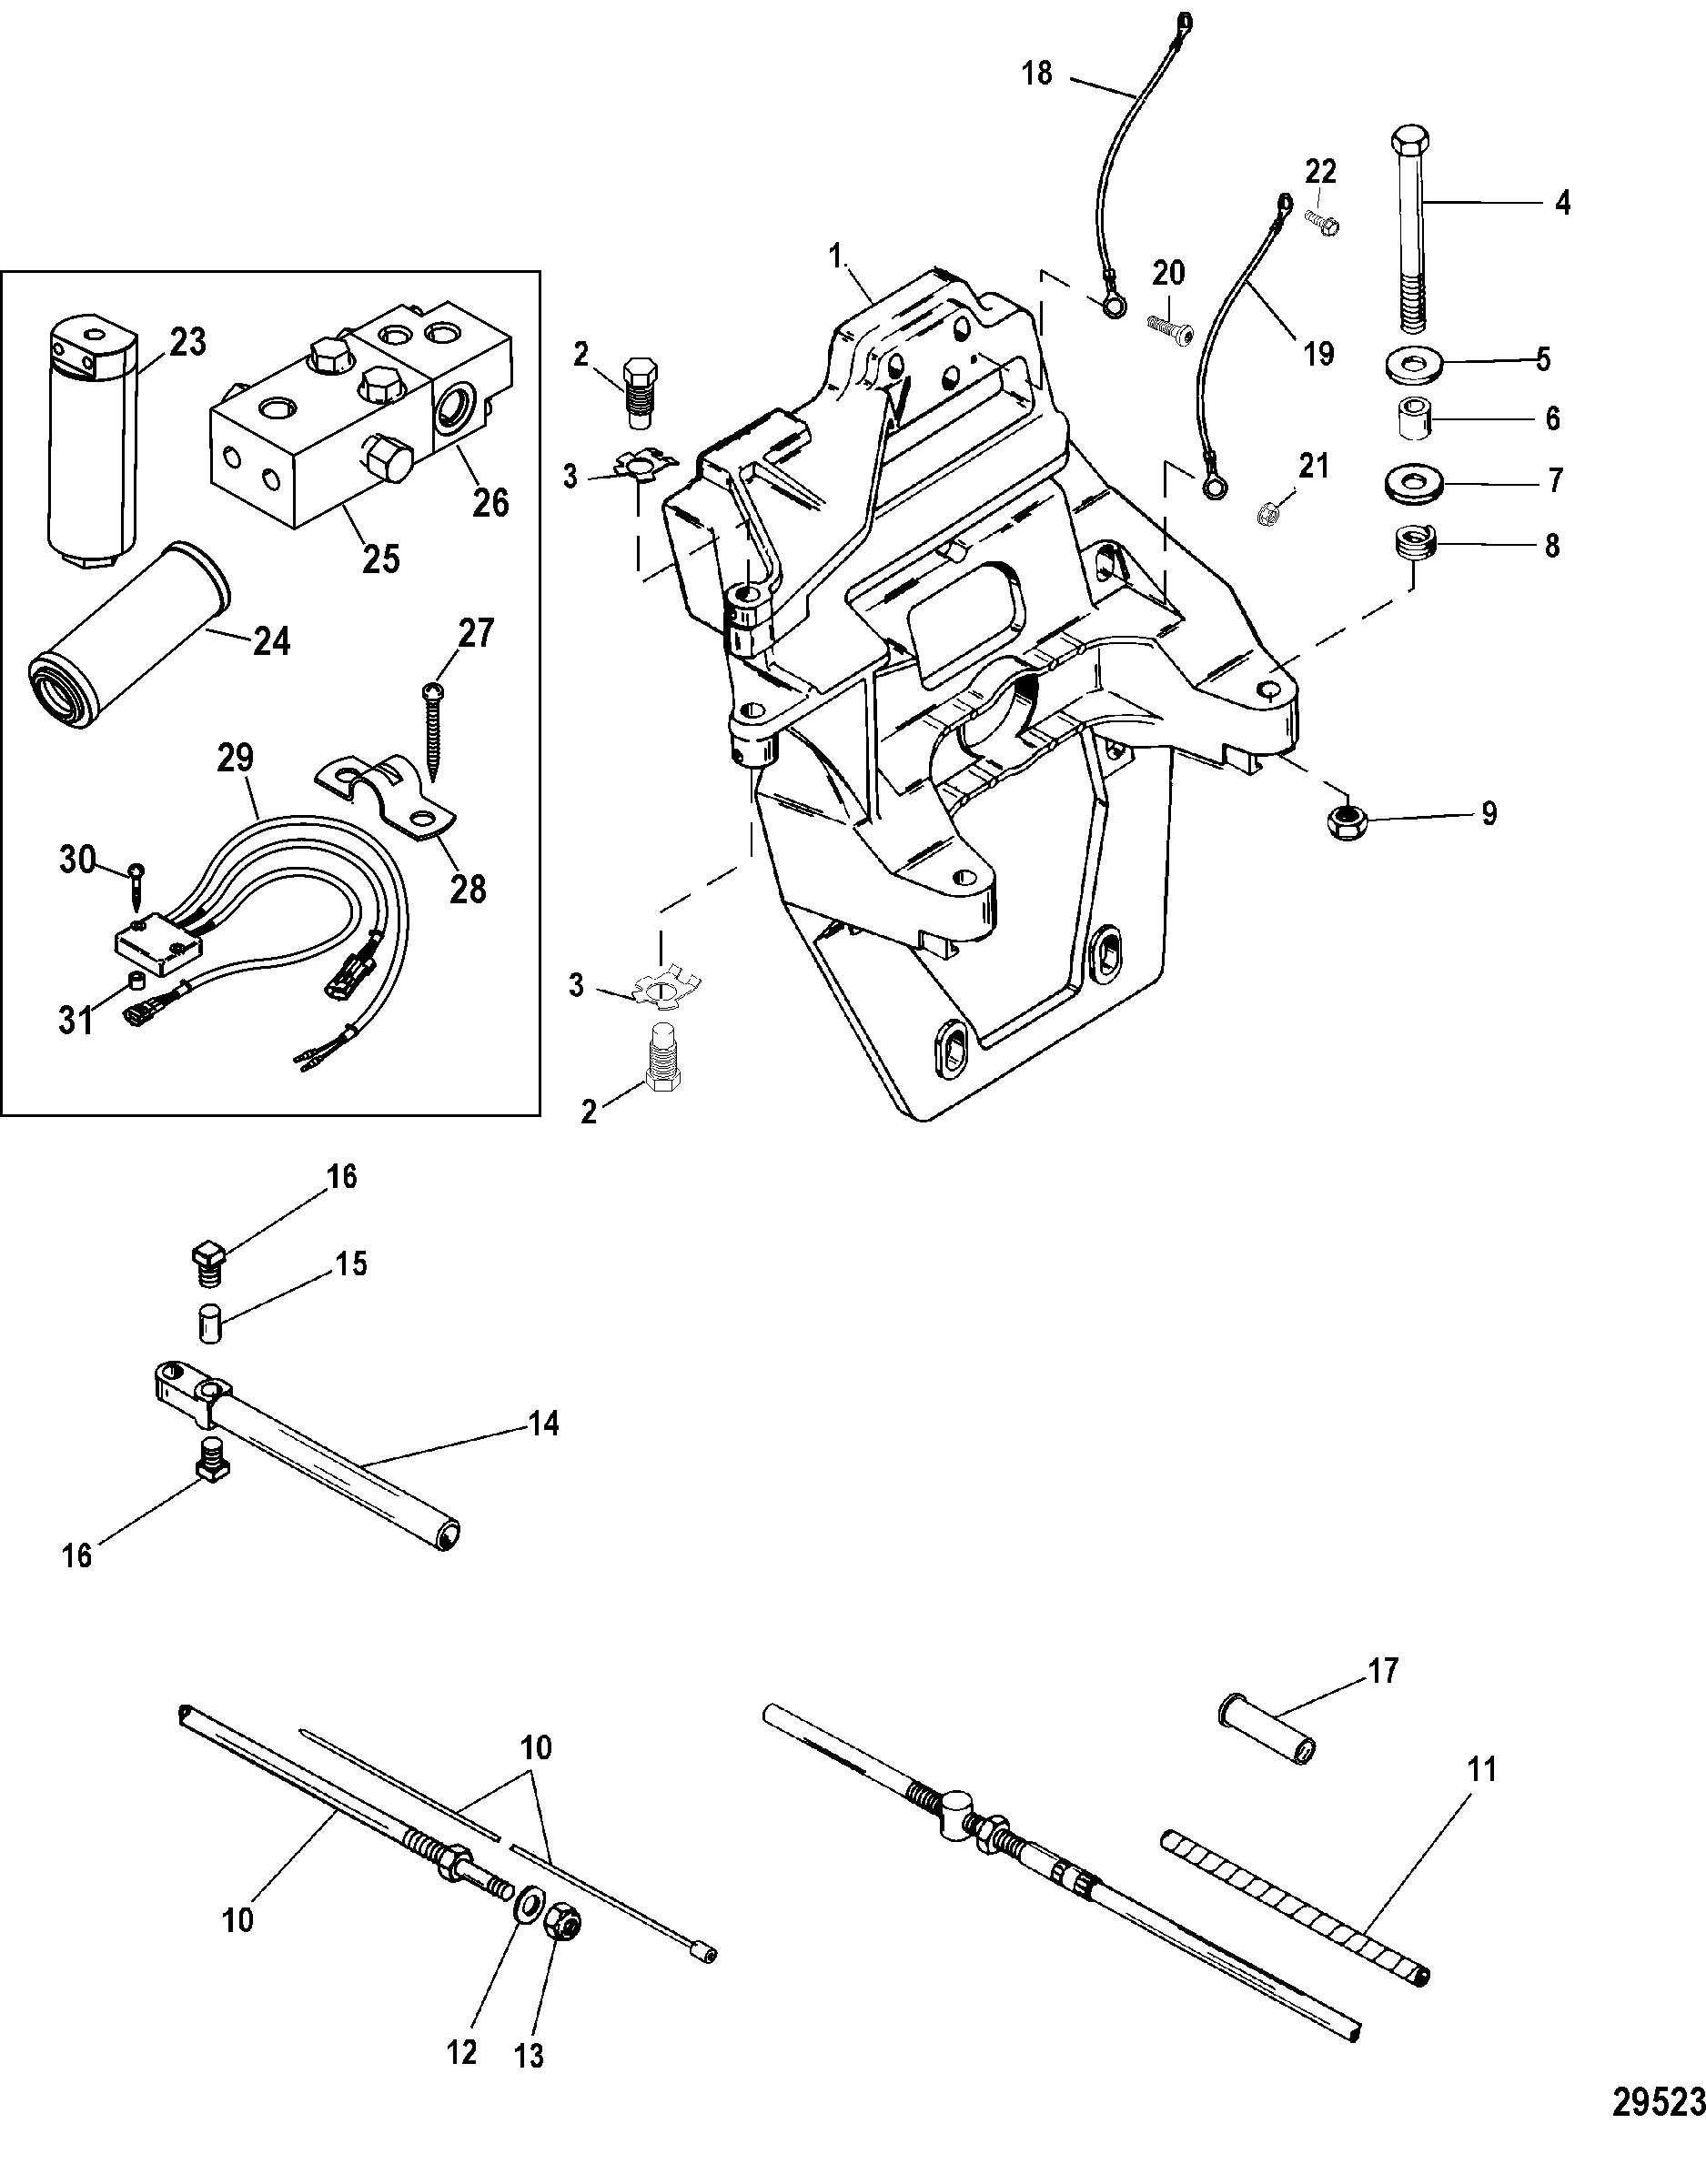 Transom Plate And Shift Cable FOR MERCRUISER / RACE